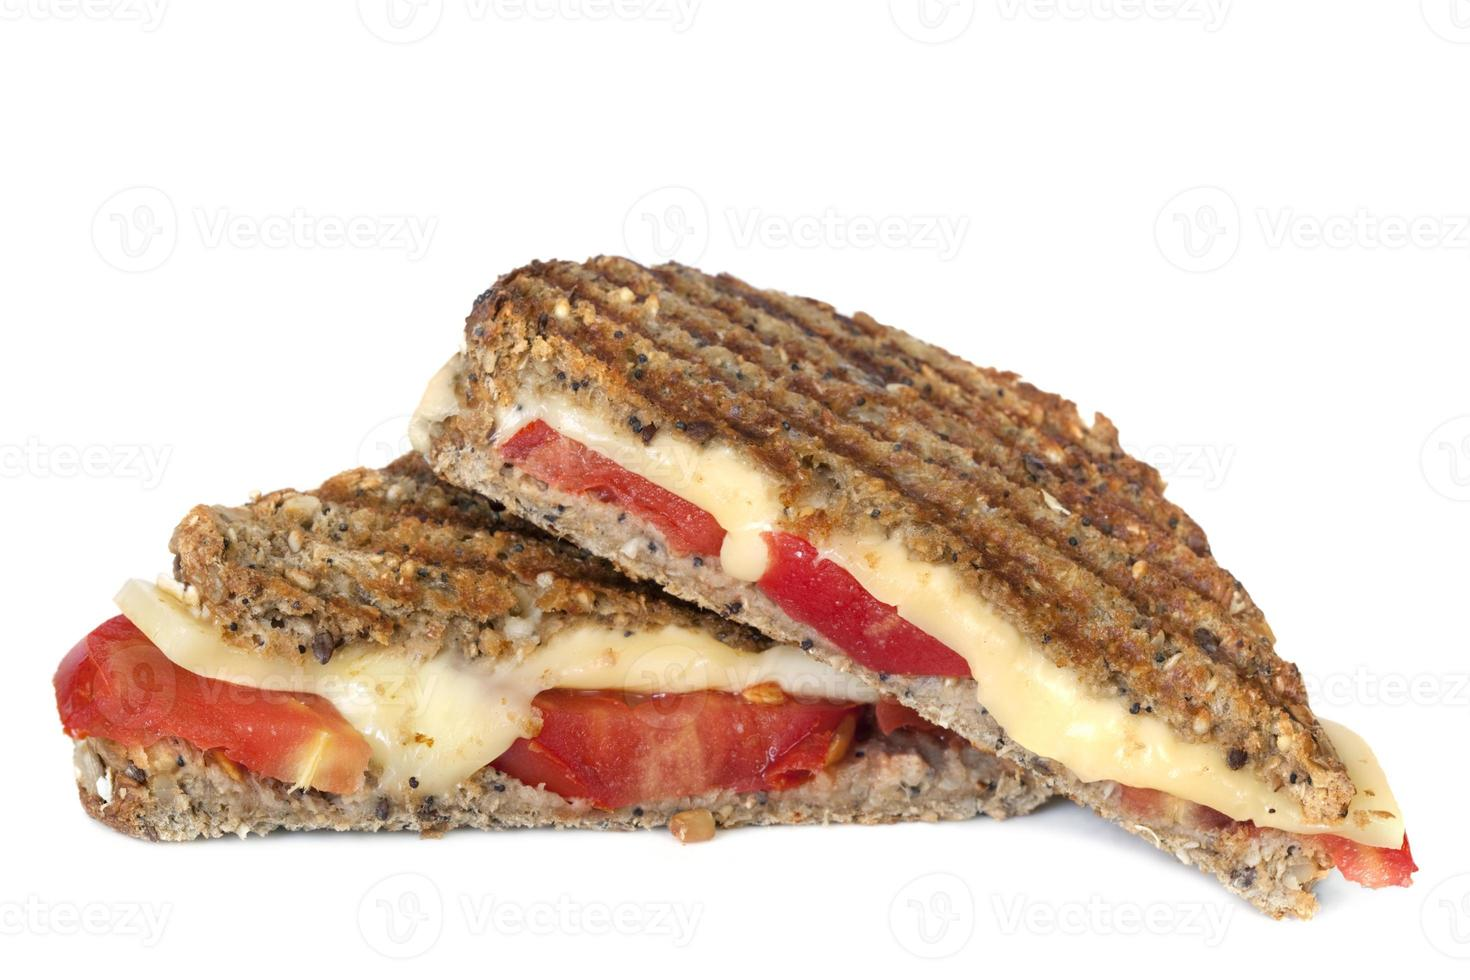 Grilled Cheese and Tomato Sandwich photo